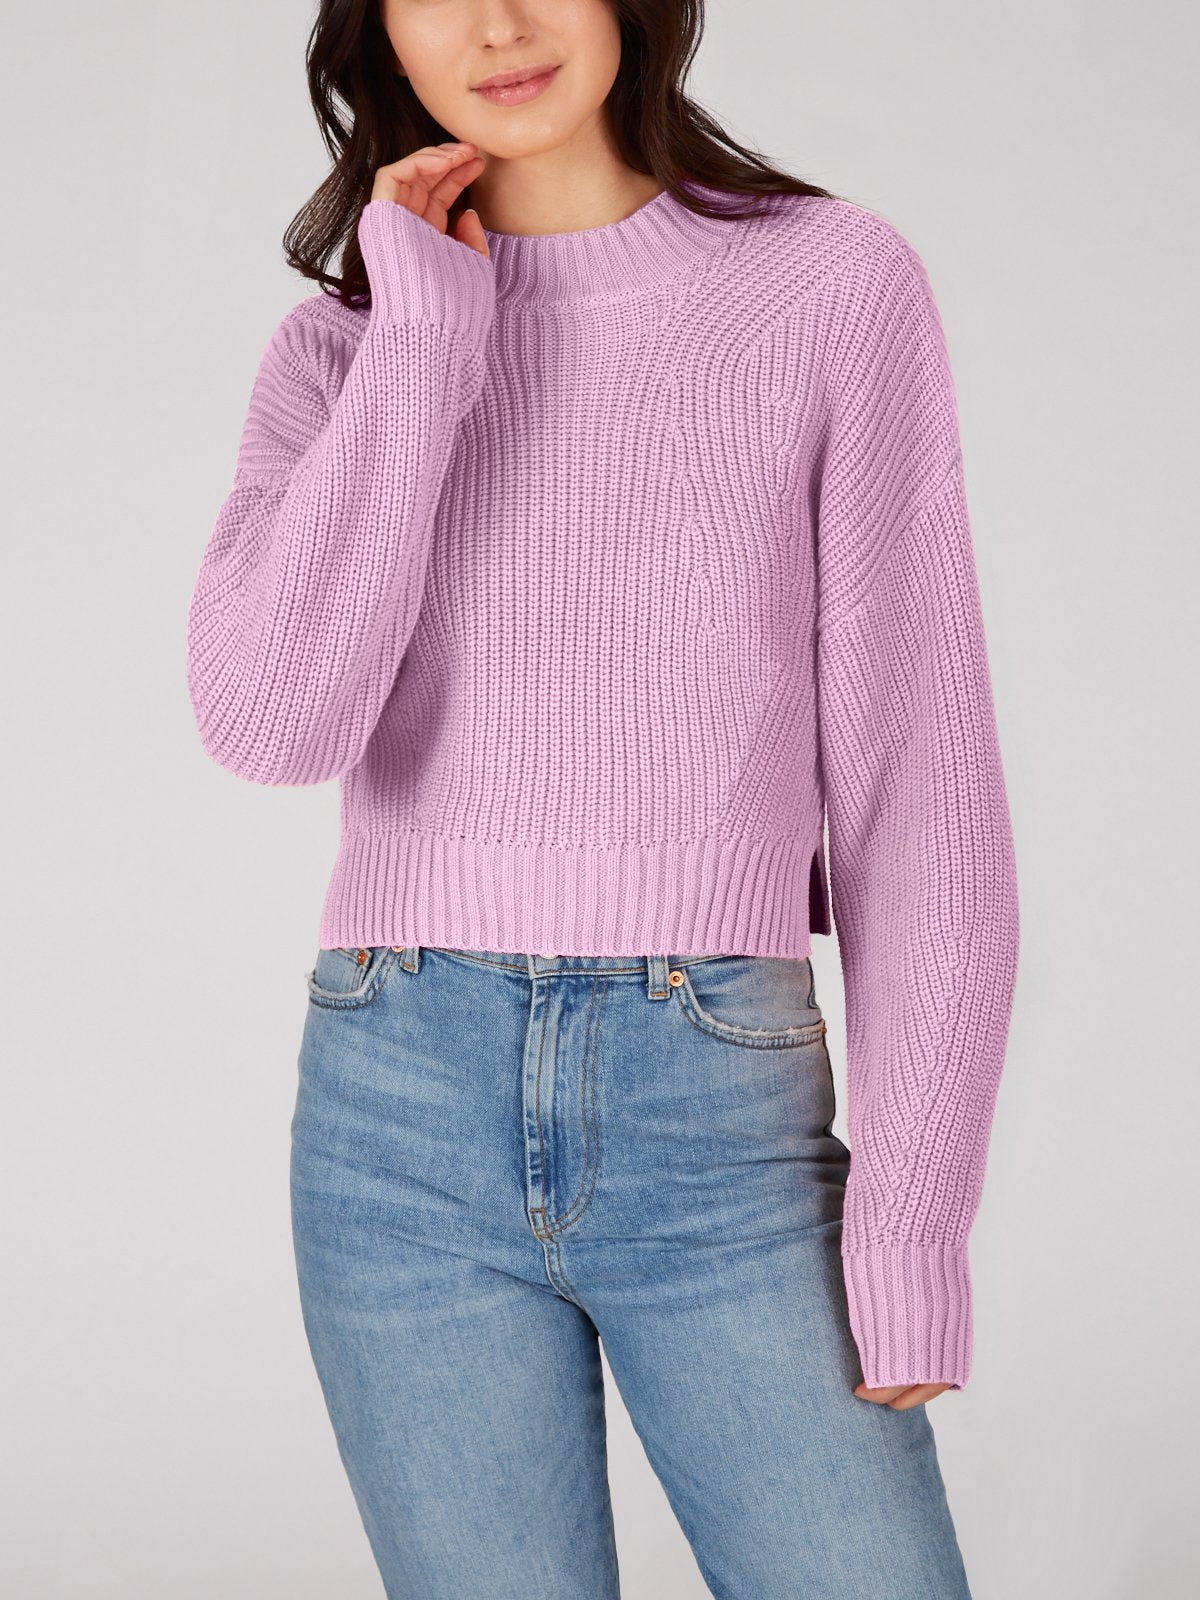 525 America Mia Cotton Cropped Sweater